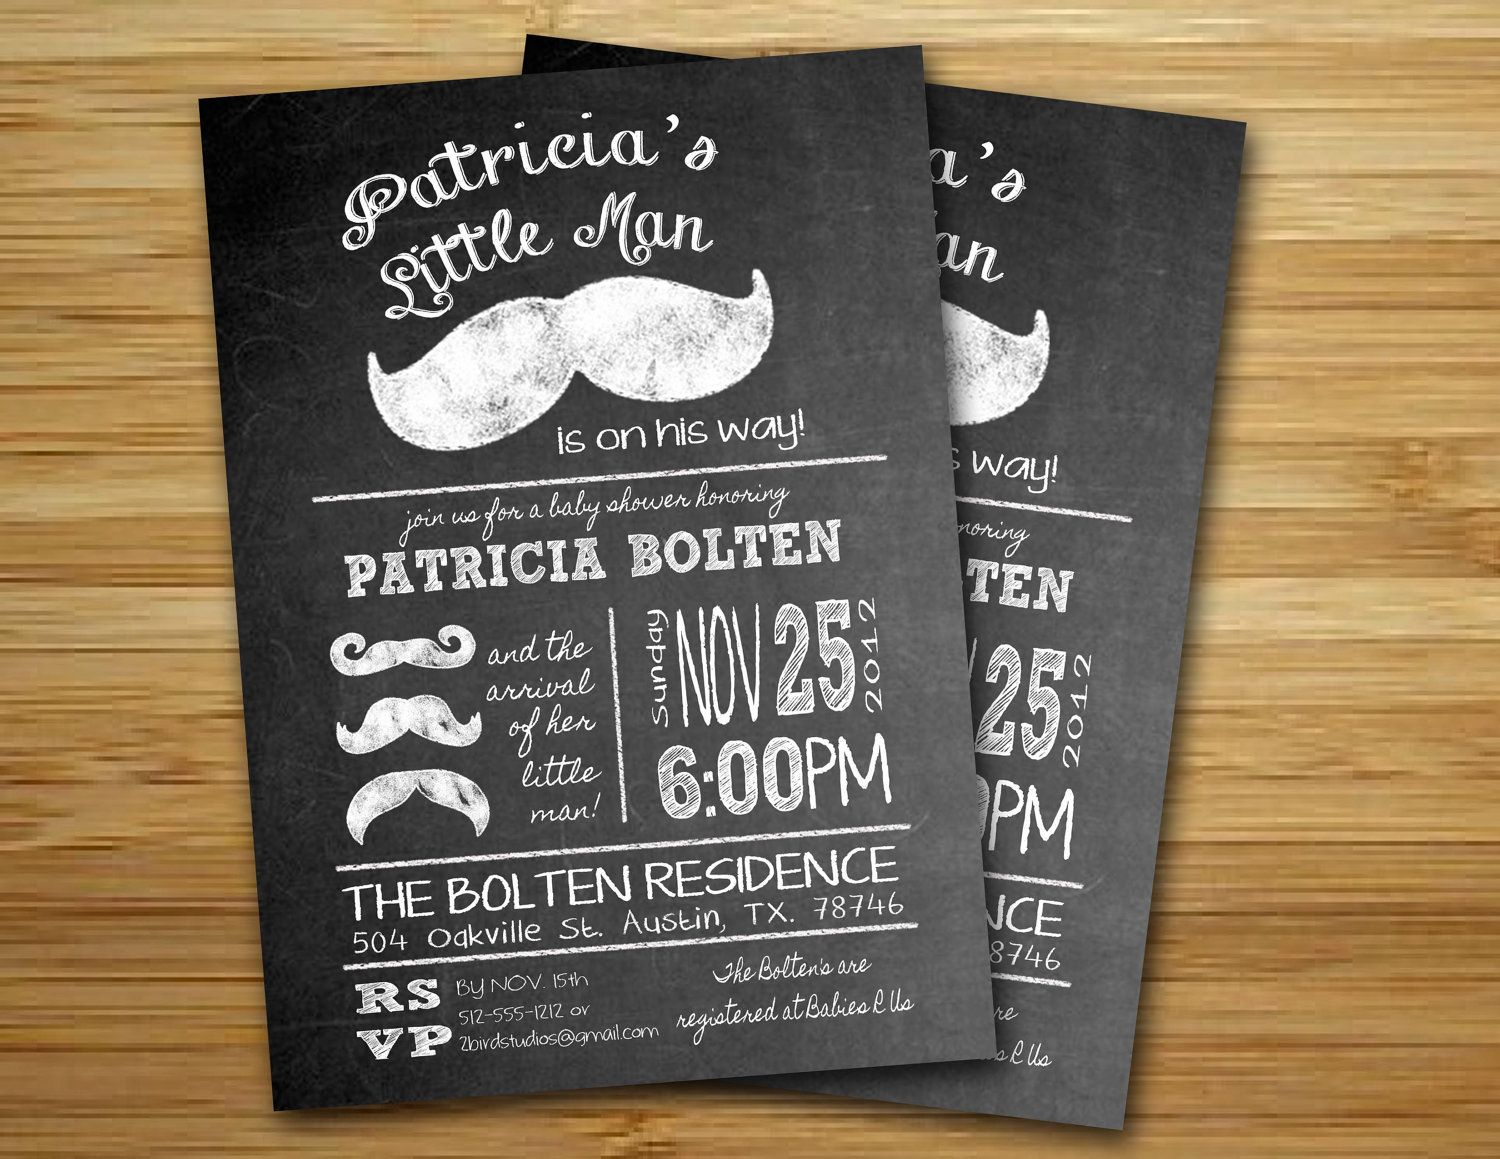 Baby shower invitation - Little man mustache baby shower invite- DIY ...